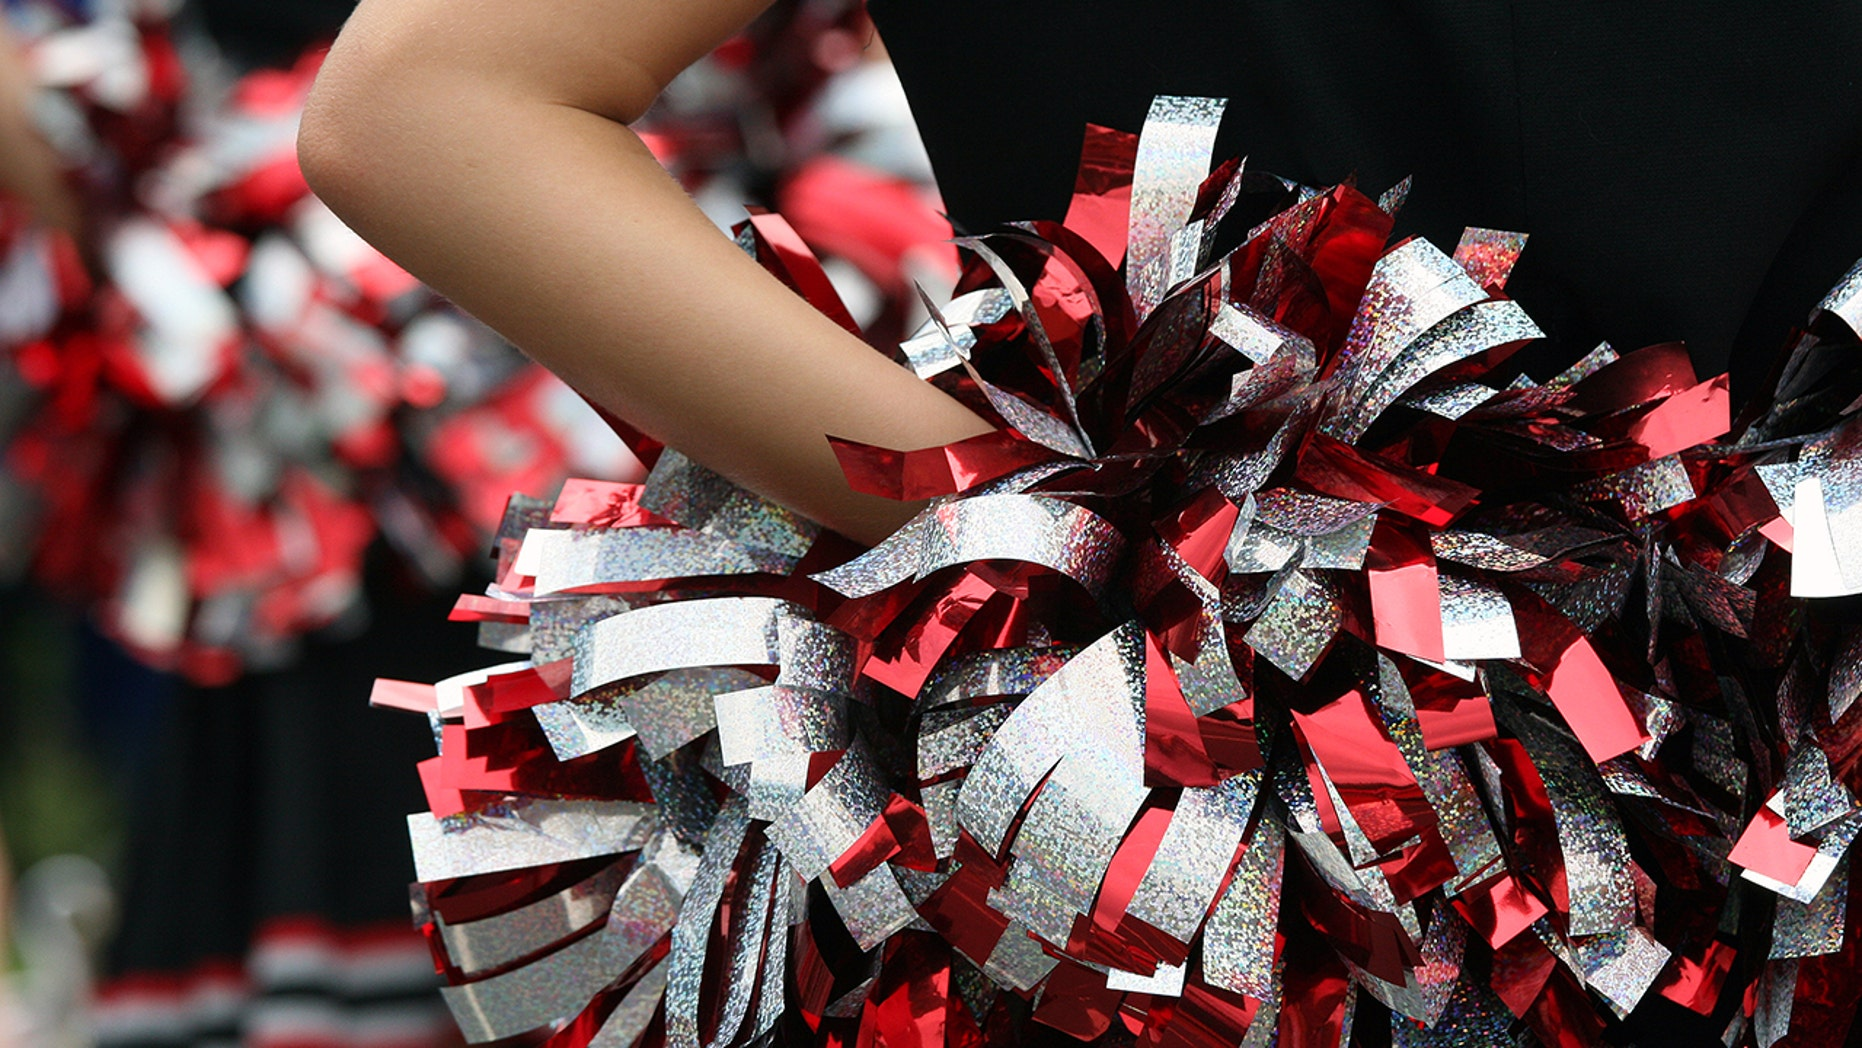 A high school in Wisconsin is under fire from simulated reviews given to cheerleaders.